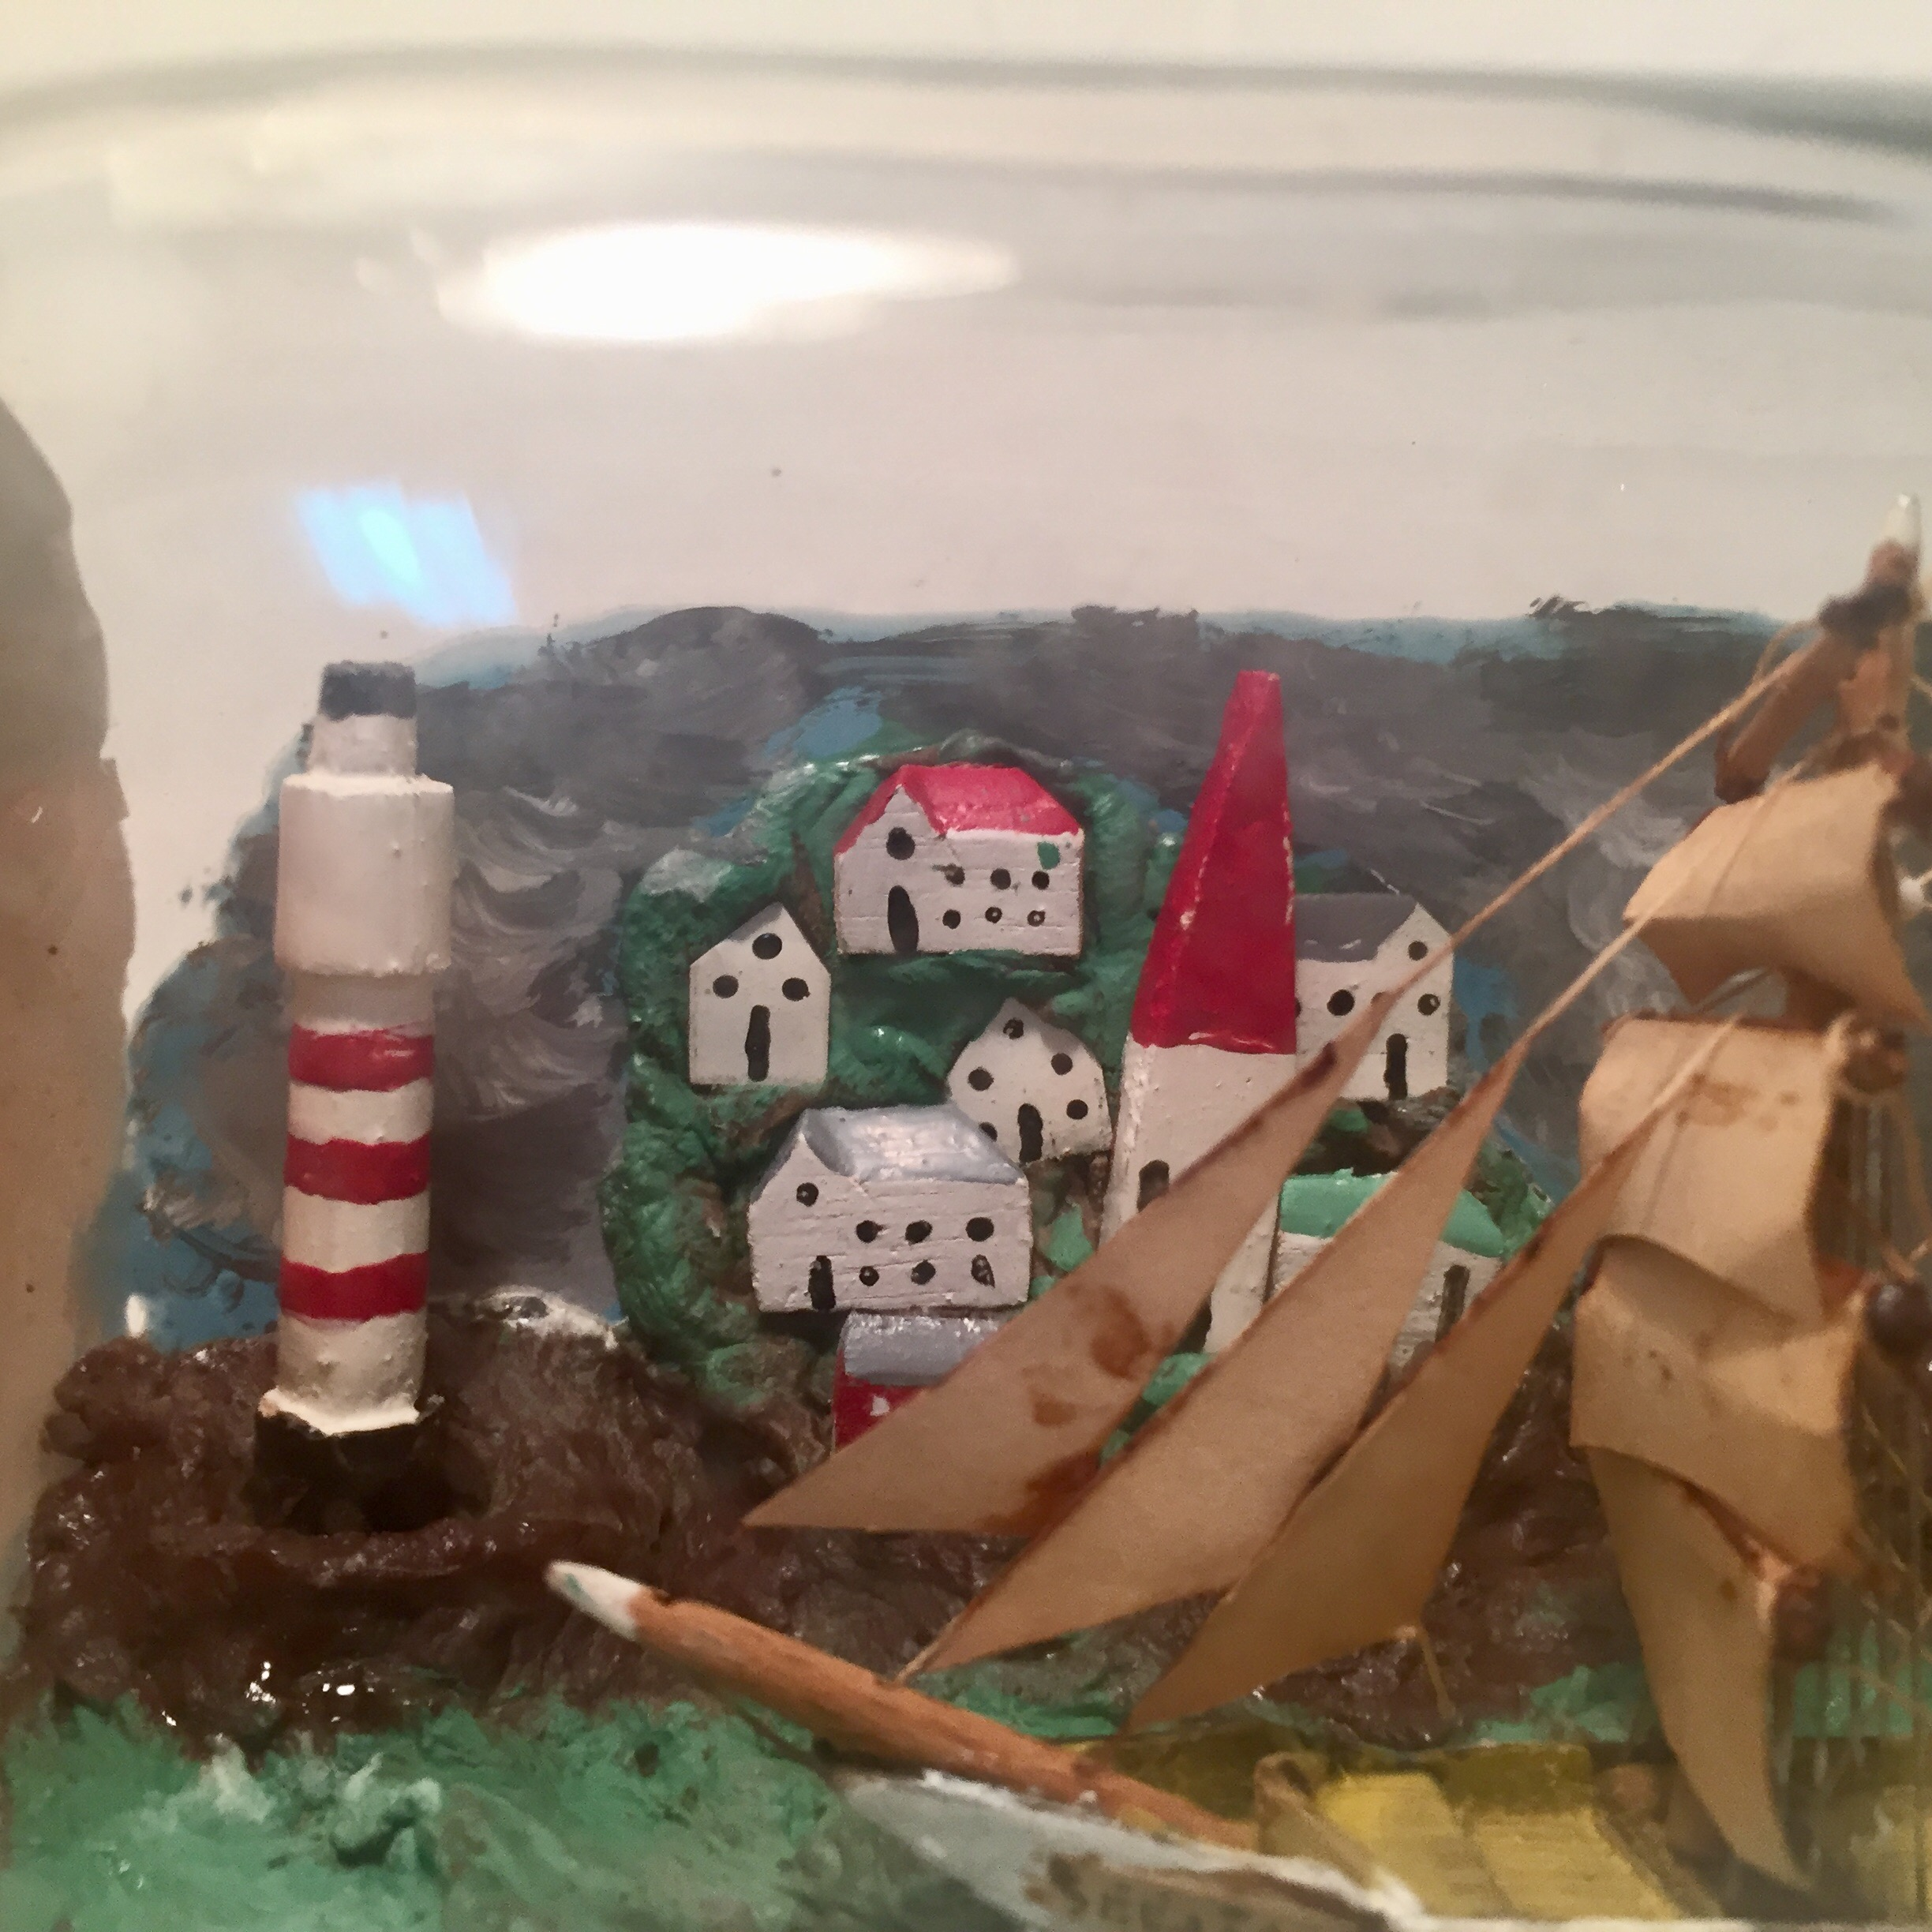 Antique European Diorama Ship in a bottle